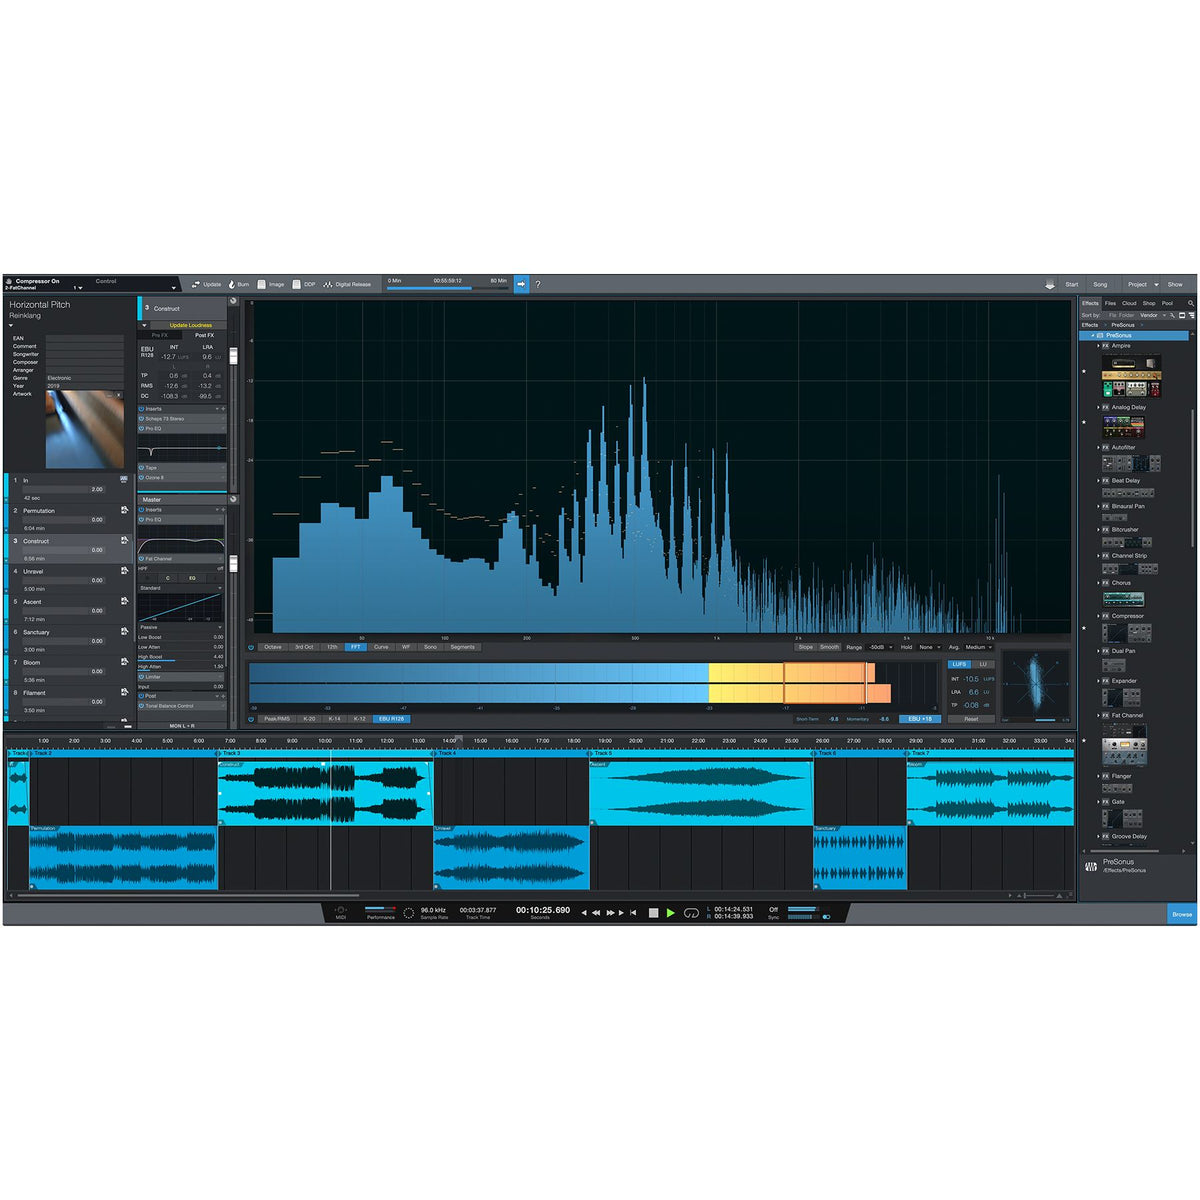 PreSonus Studio One 5 Professional Upgrade from Professional/Producer (all versions) Software - Digital Download